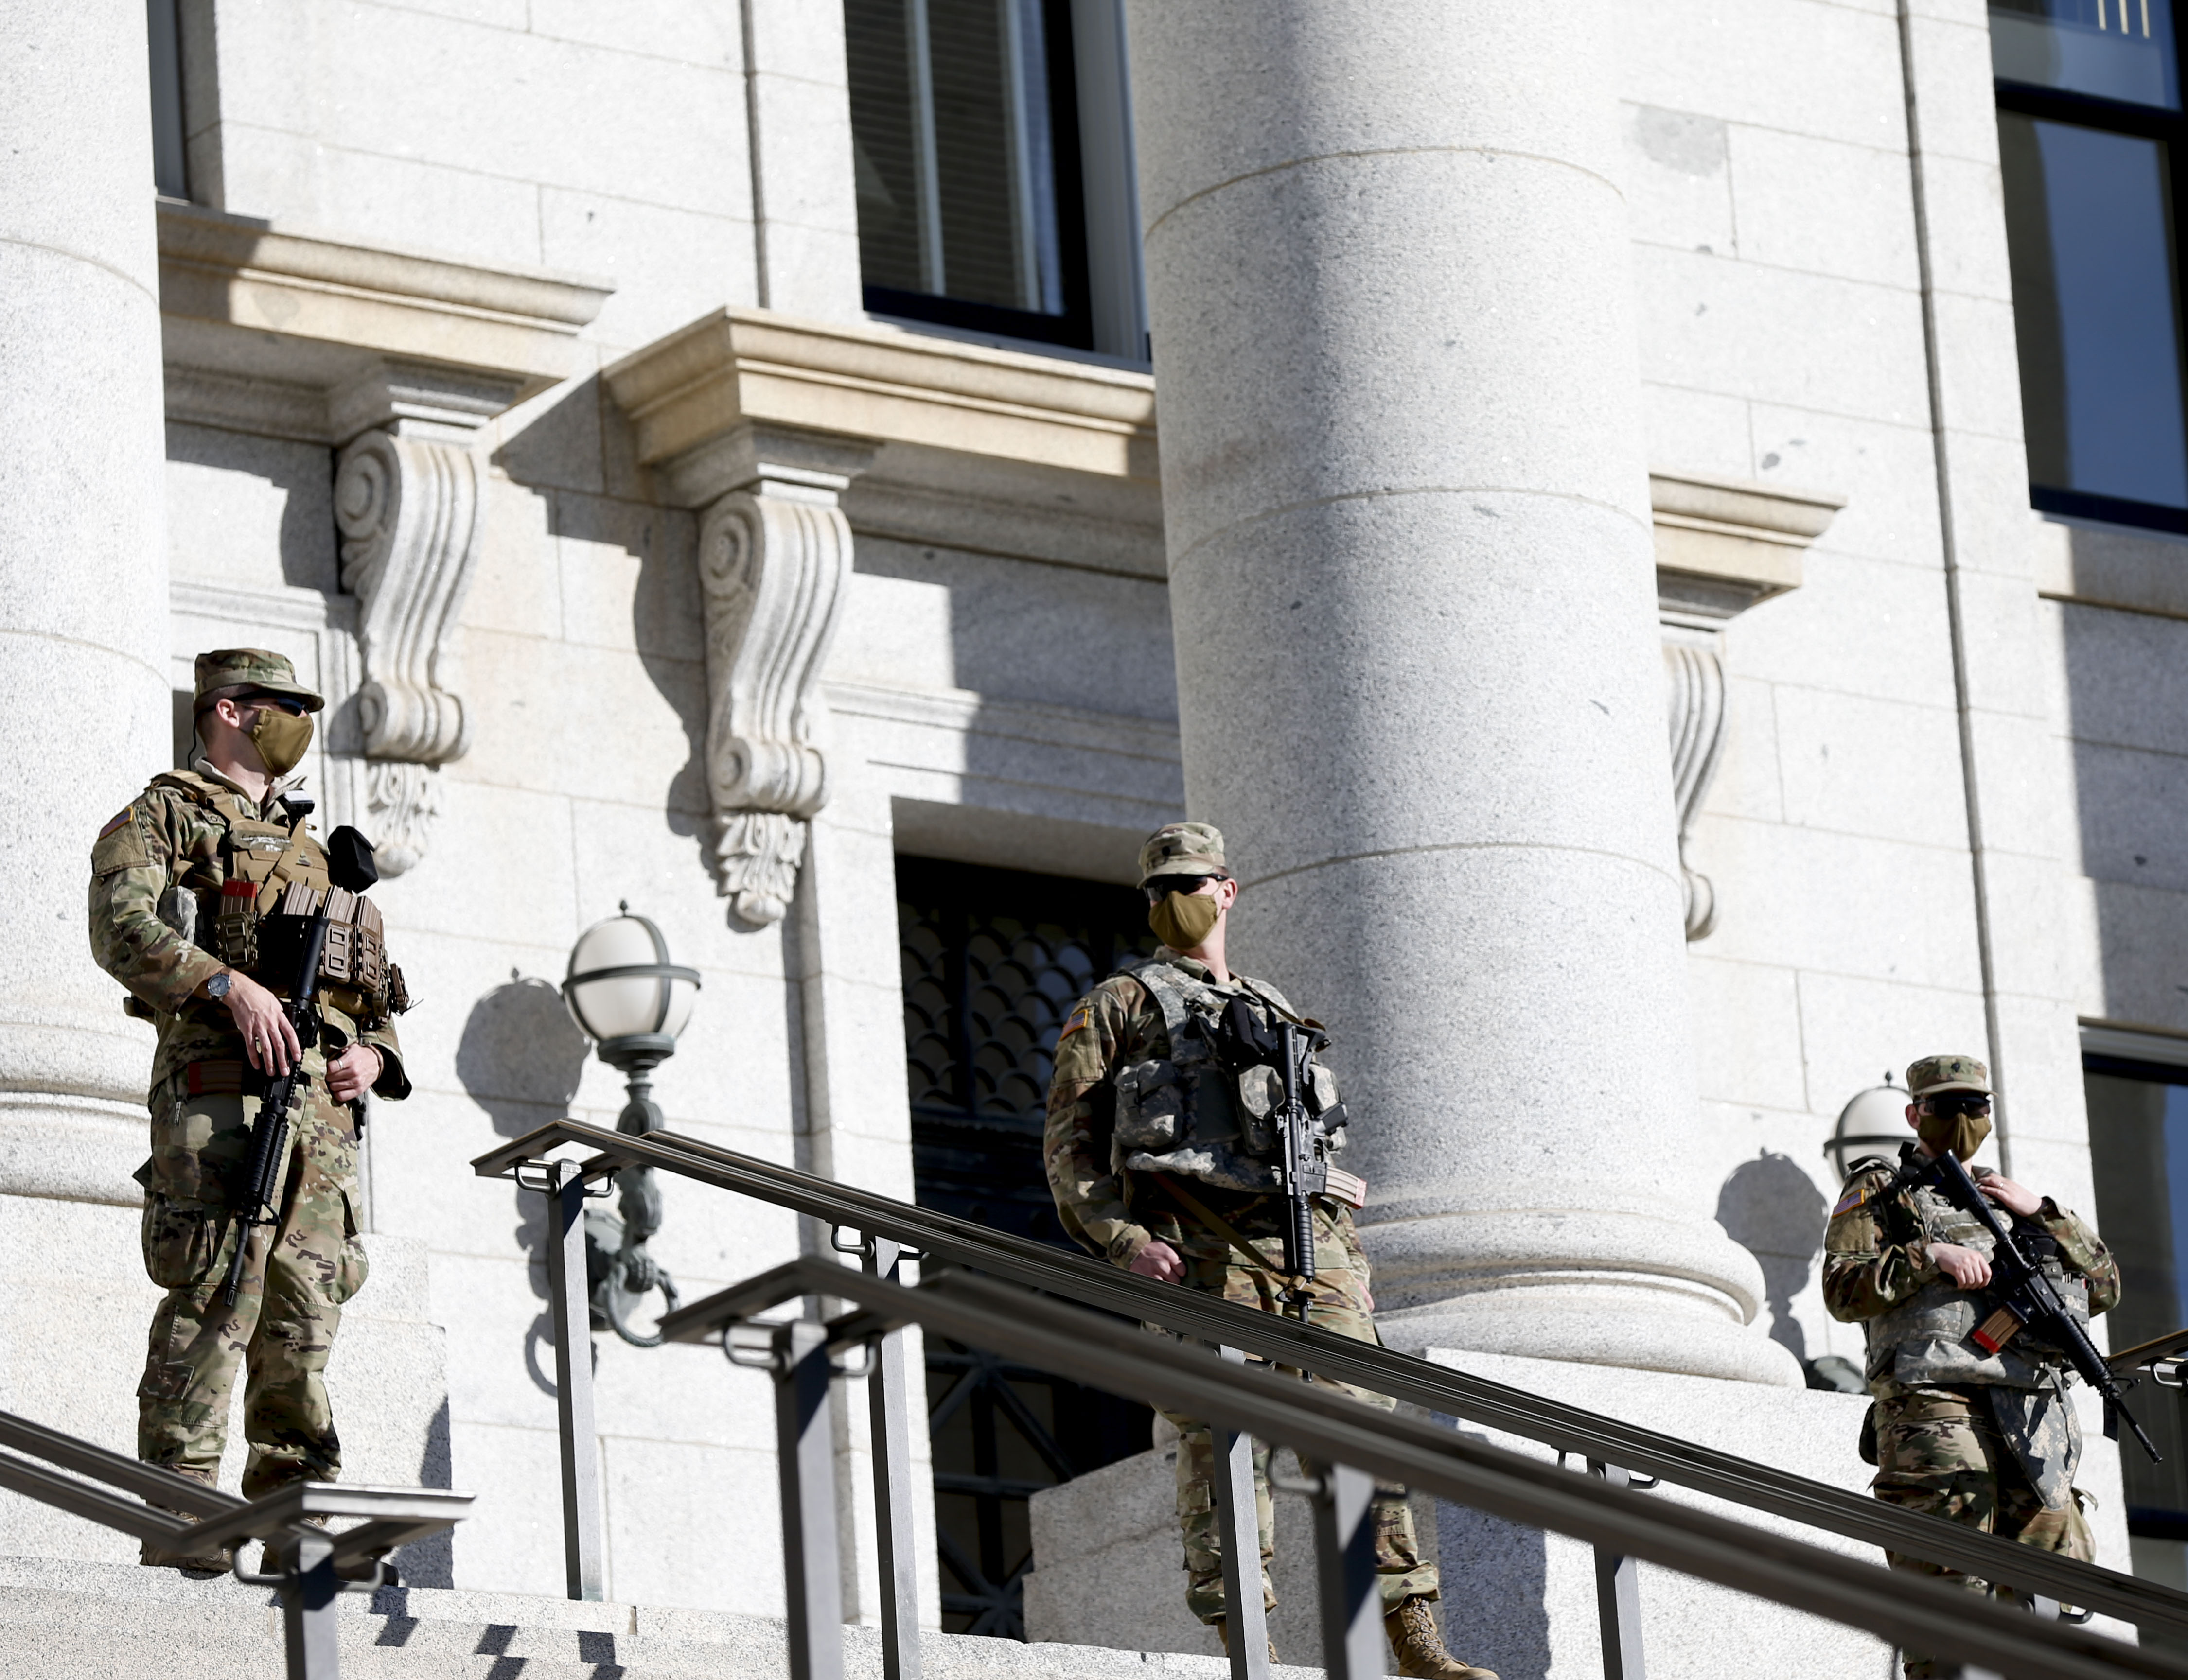 Armed Utah National Guard soldiers patrol the state Capitol in Salt Lake City on Wednesday, Jan. 20, 2021.